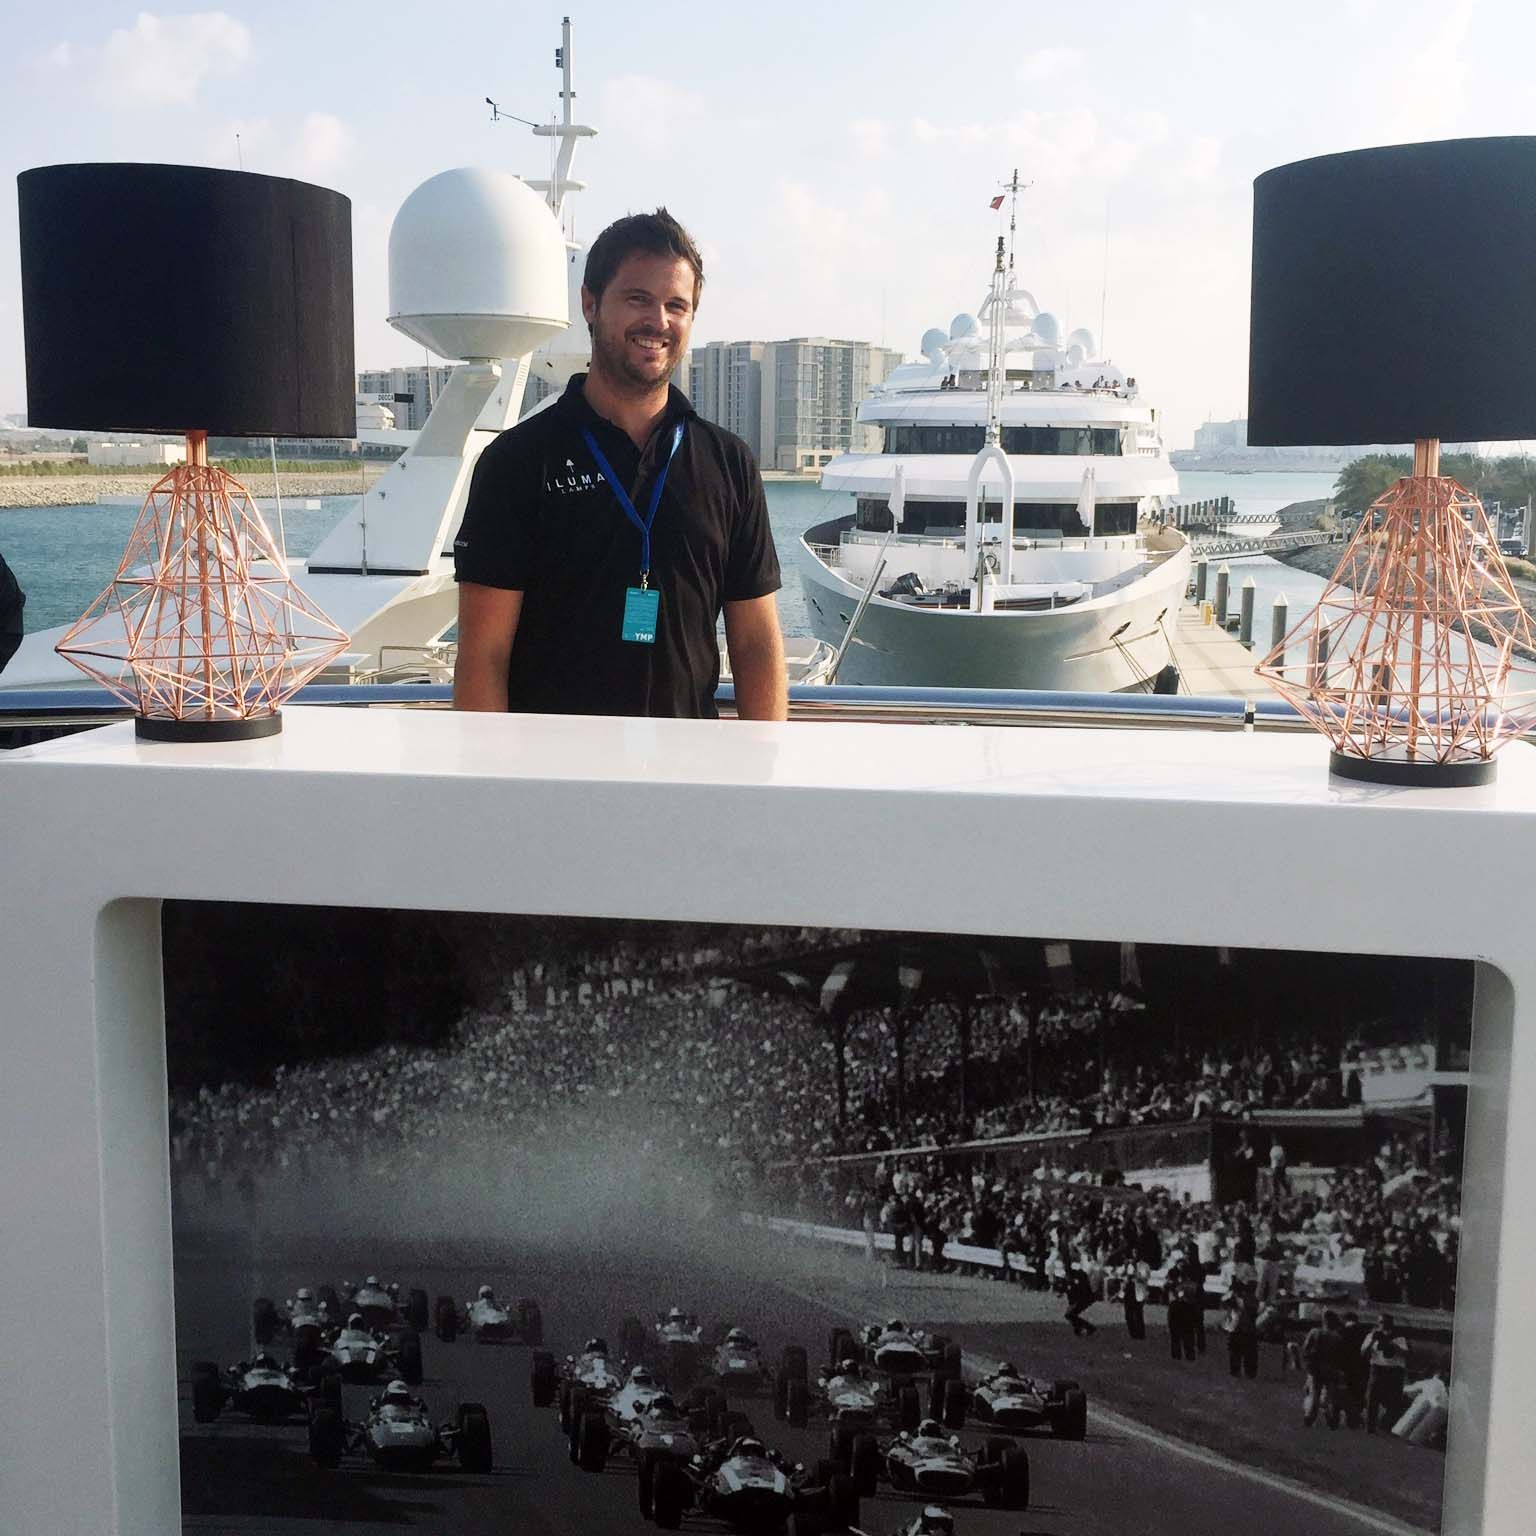 Mike installing on a monster boat at F1 2015, Yas Marina. Elegant Cordless Lighting for Events